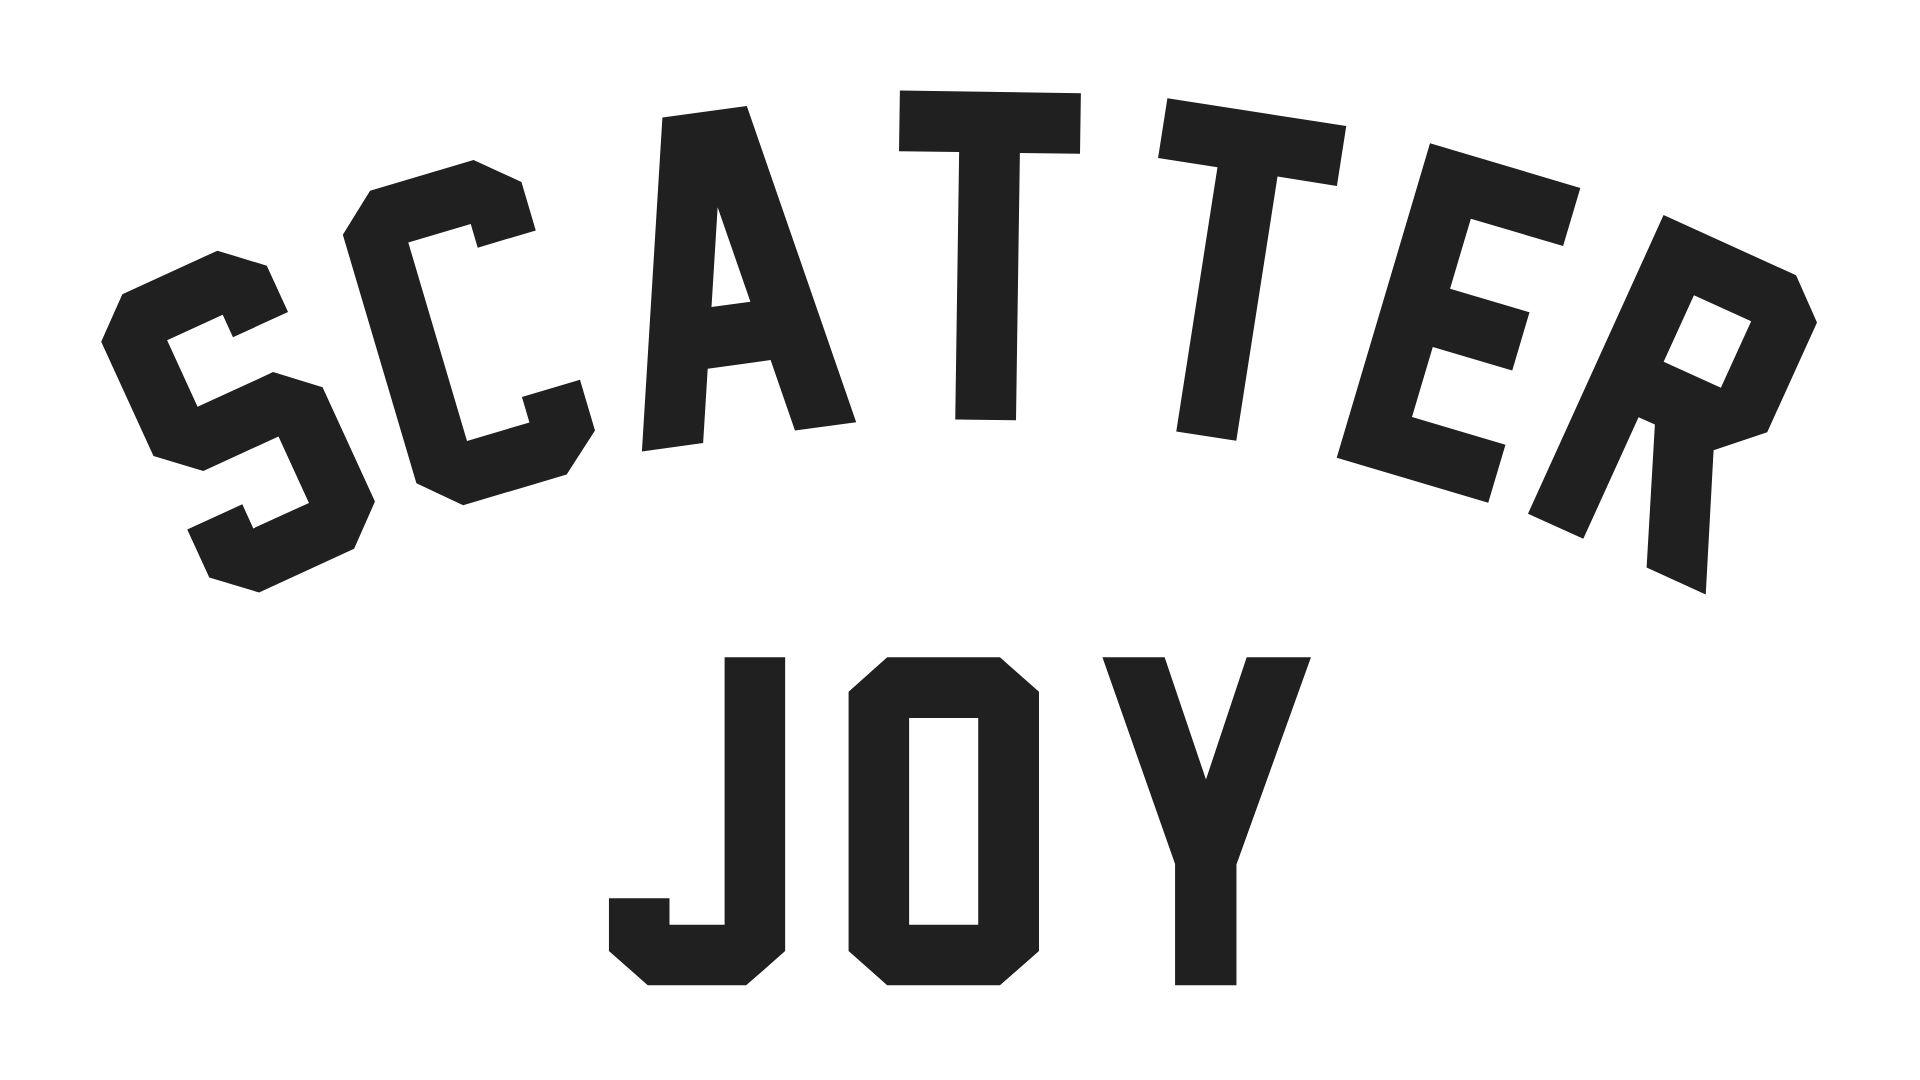 Scatter Joy Project